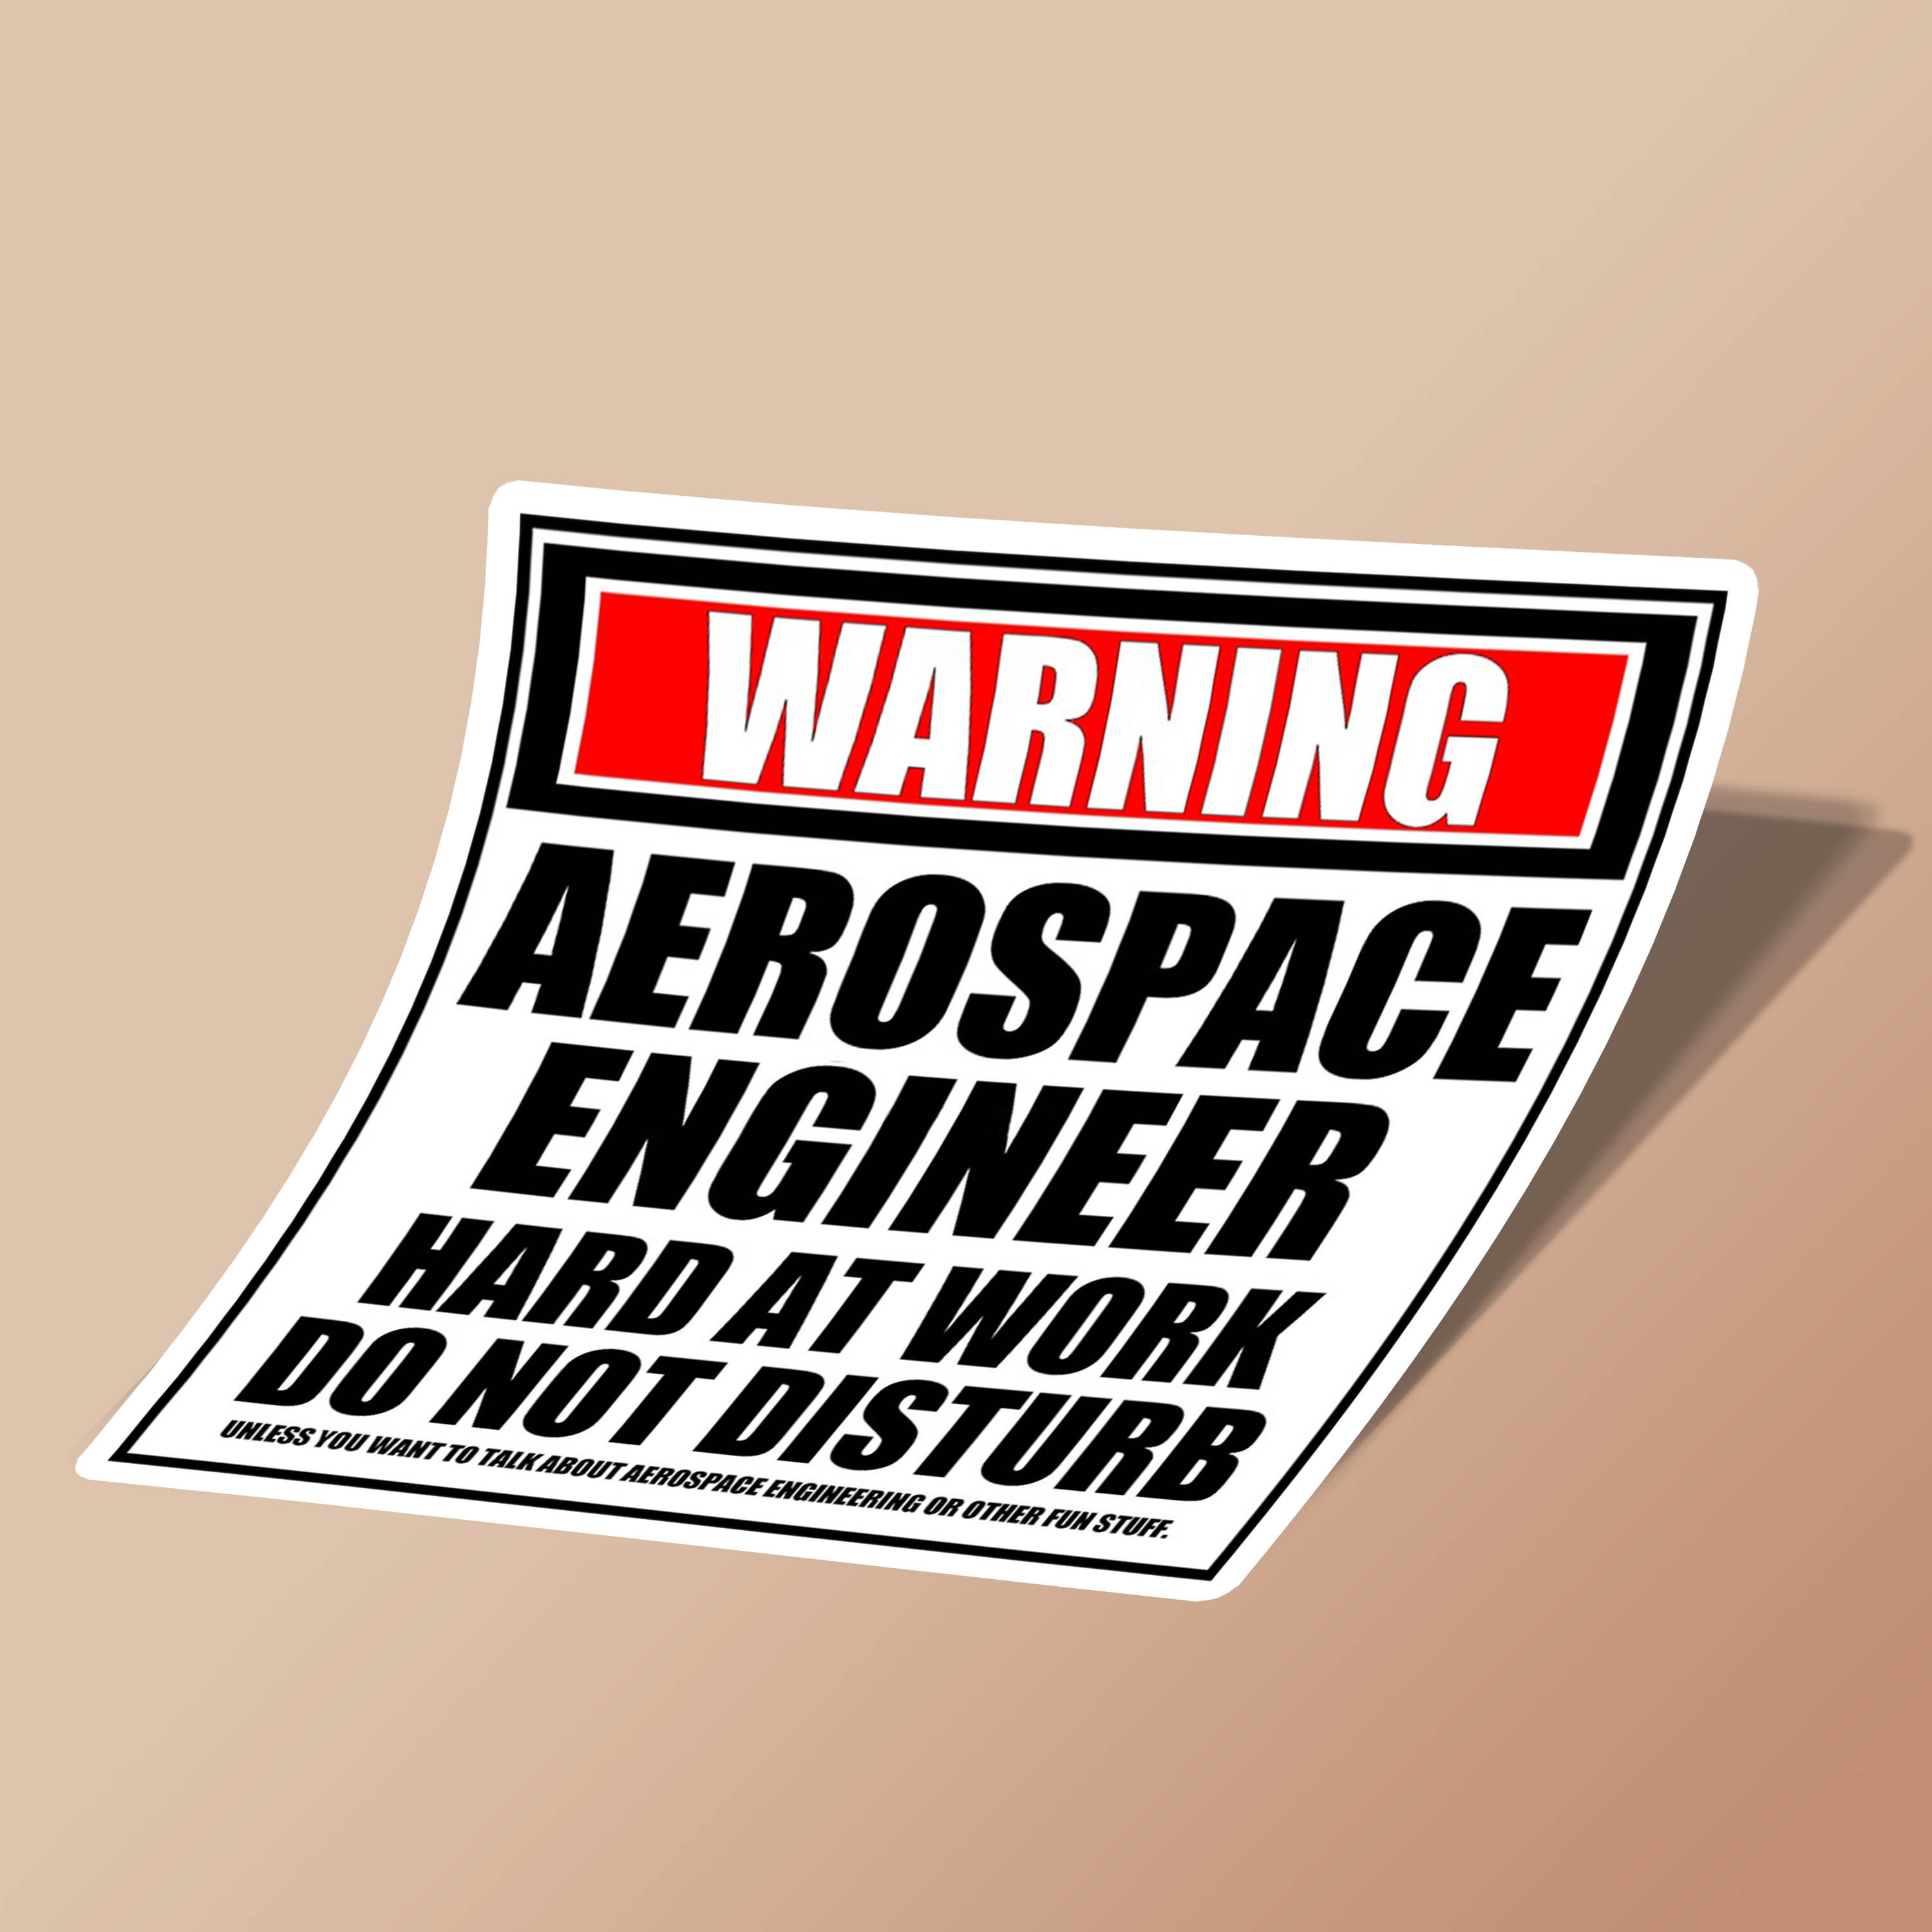 Warning Aerospace Engineer Hard At Work Do Not Disturb